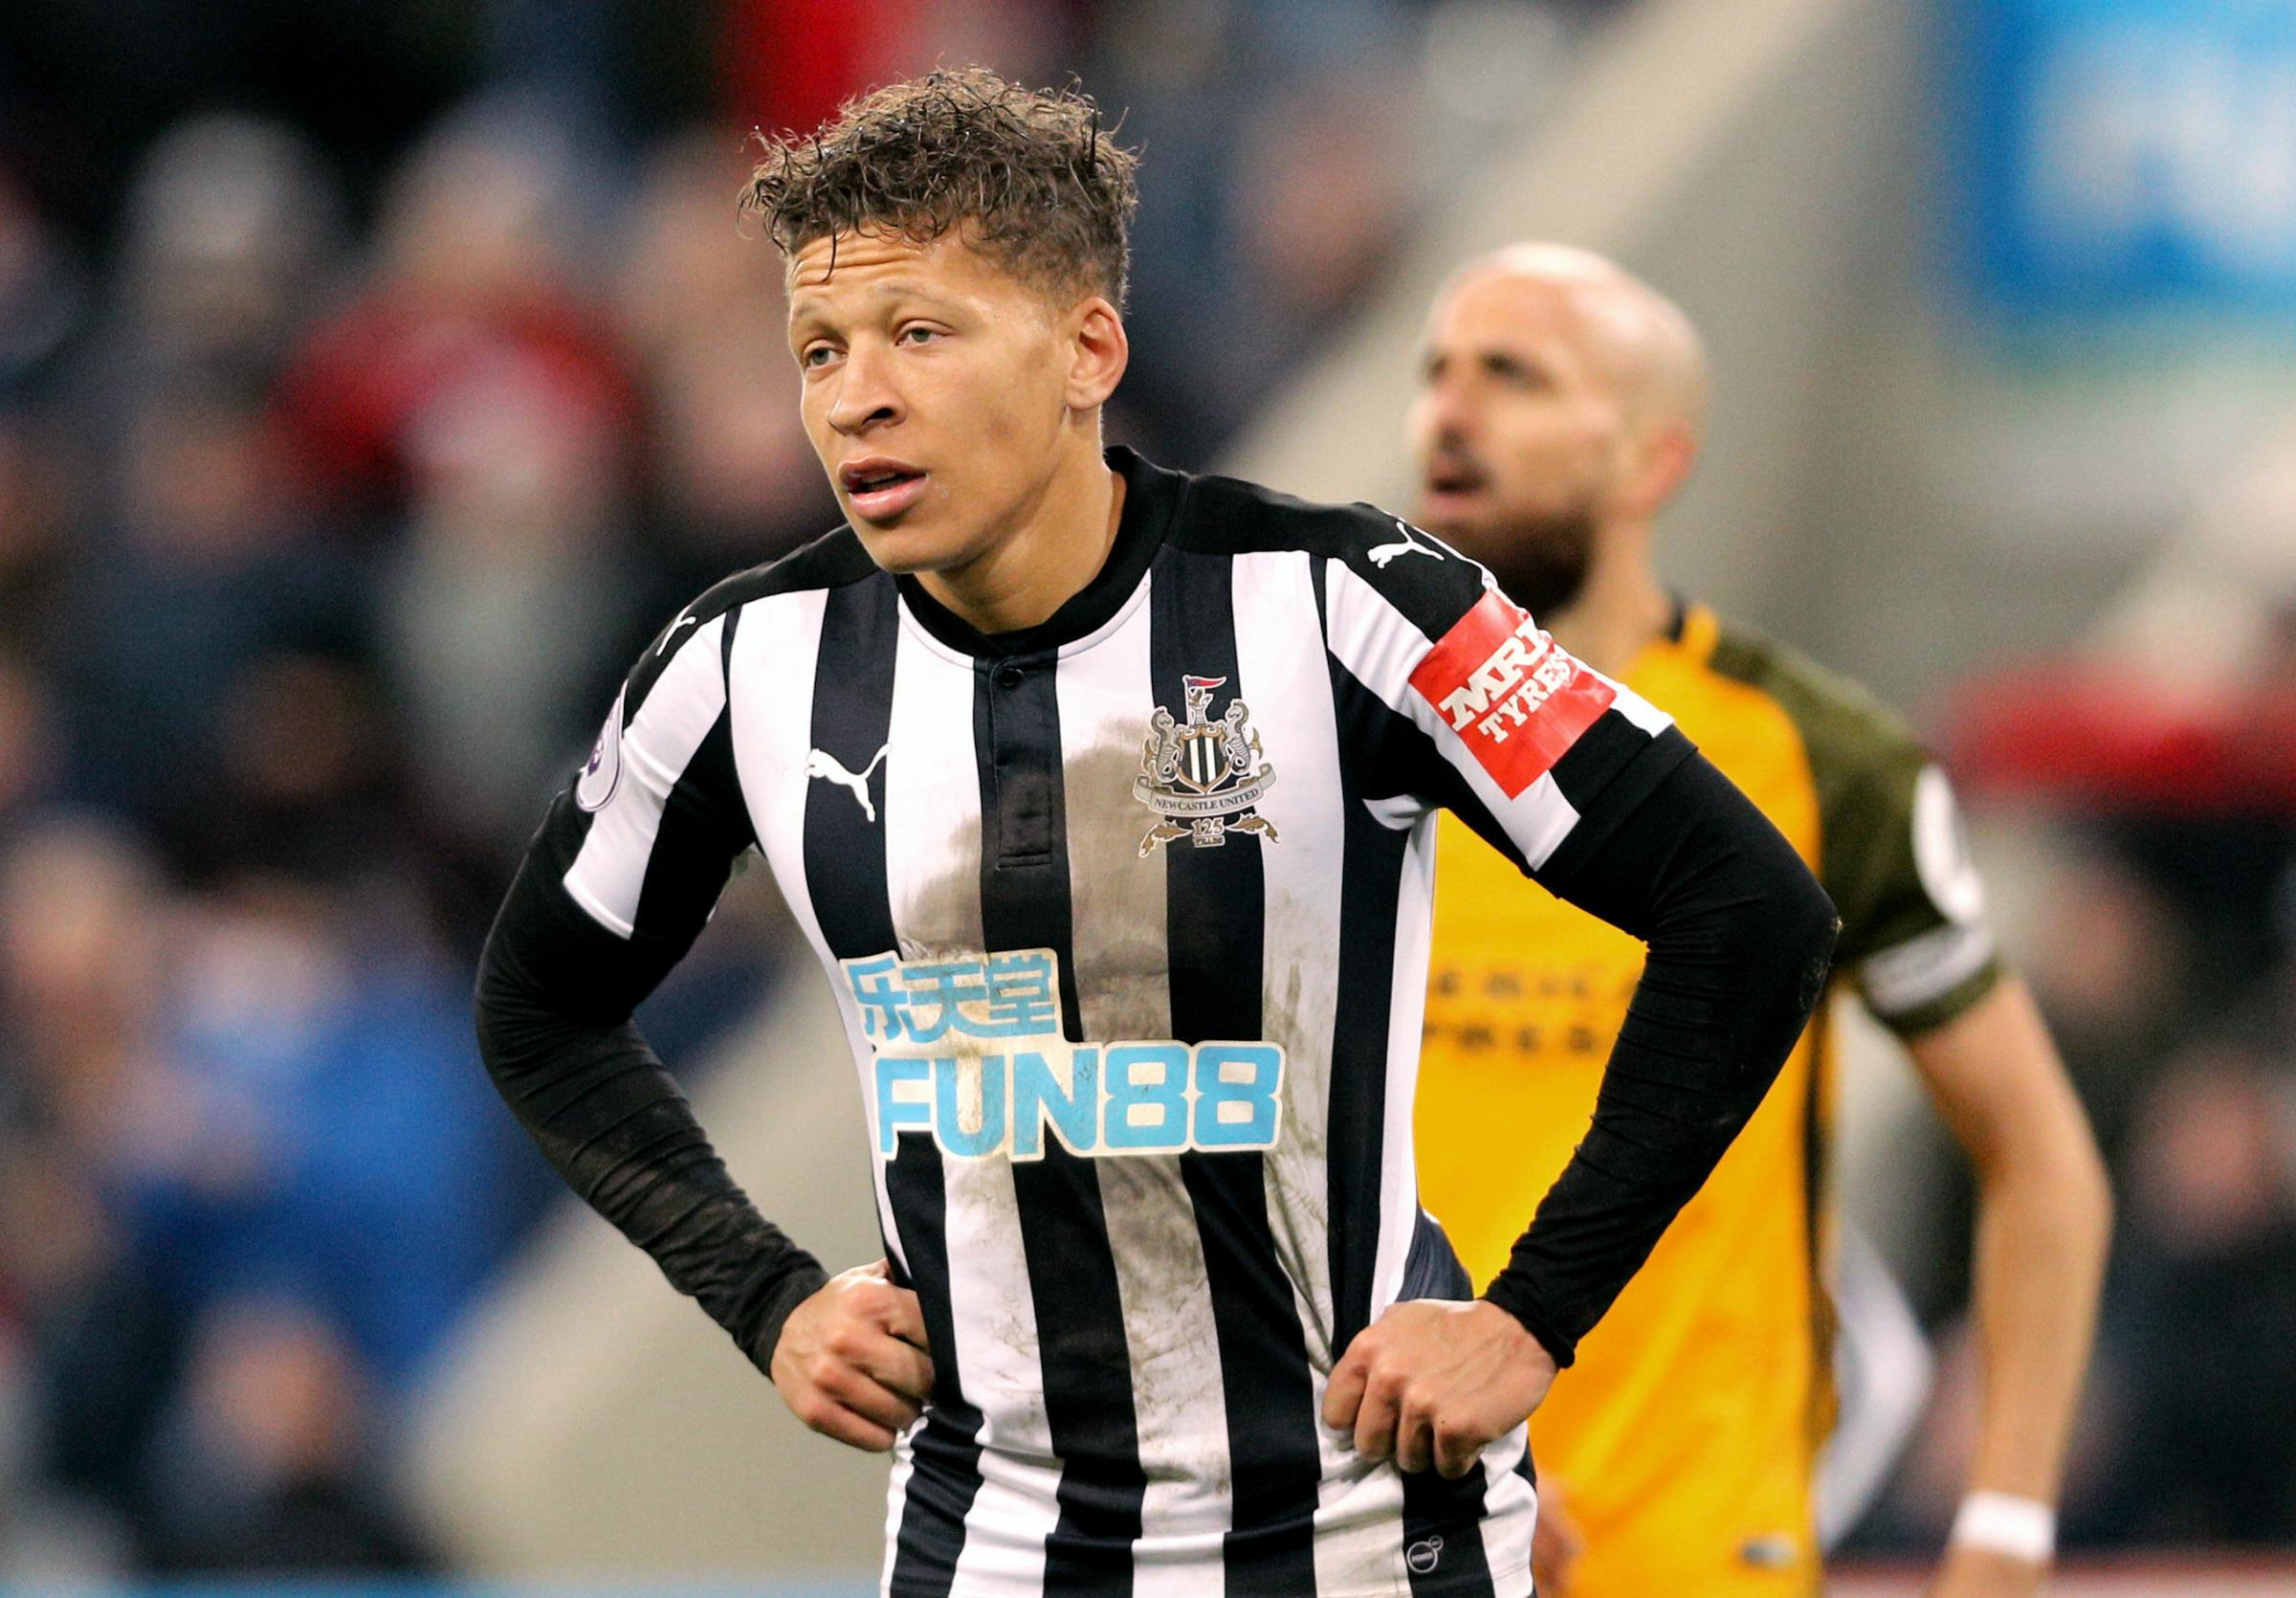 DISAPPOINTED: Dwight Gayle shows his frustration during Newcastle's goalless draw with Brighton (Picture: Owen Humphreys/PA Wire)